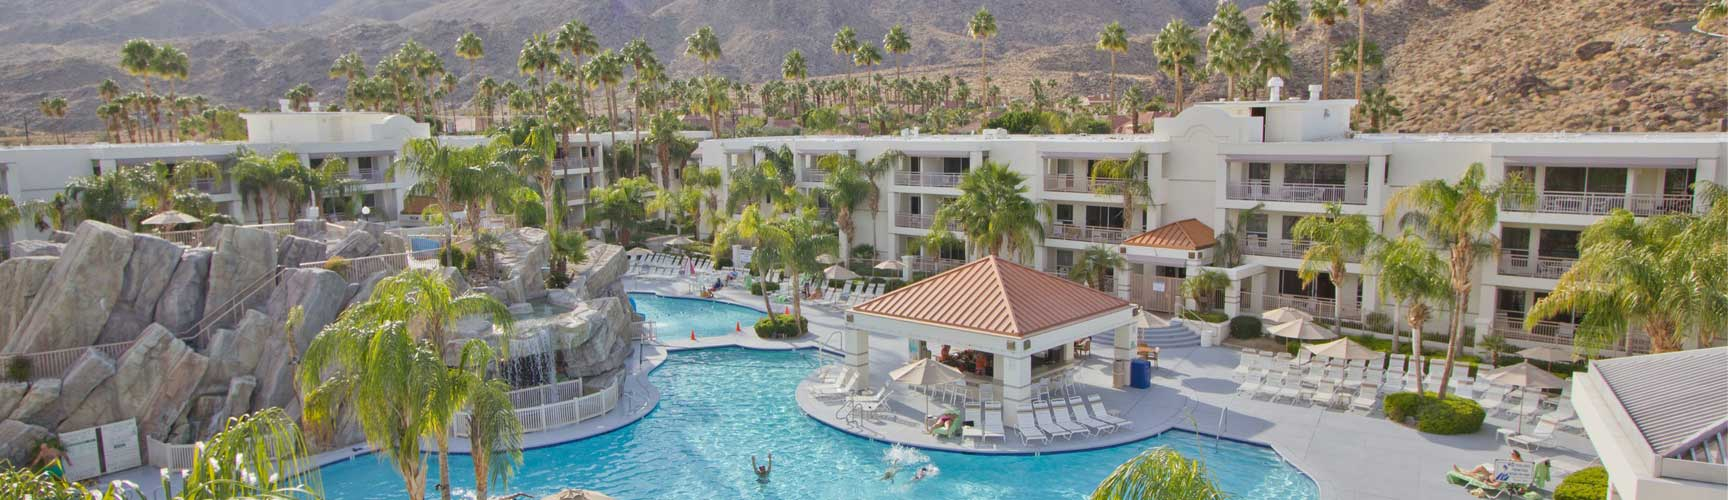 Aerial view of Palm Canyon Resort